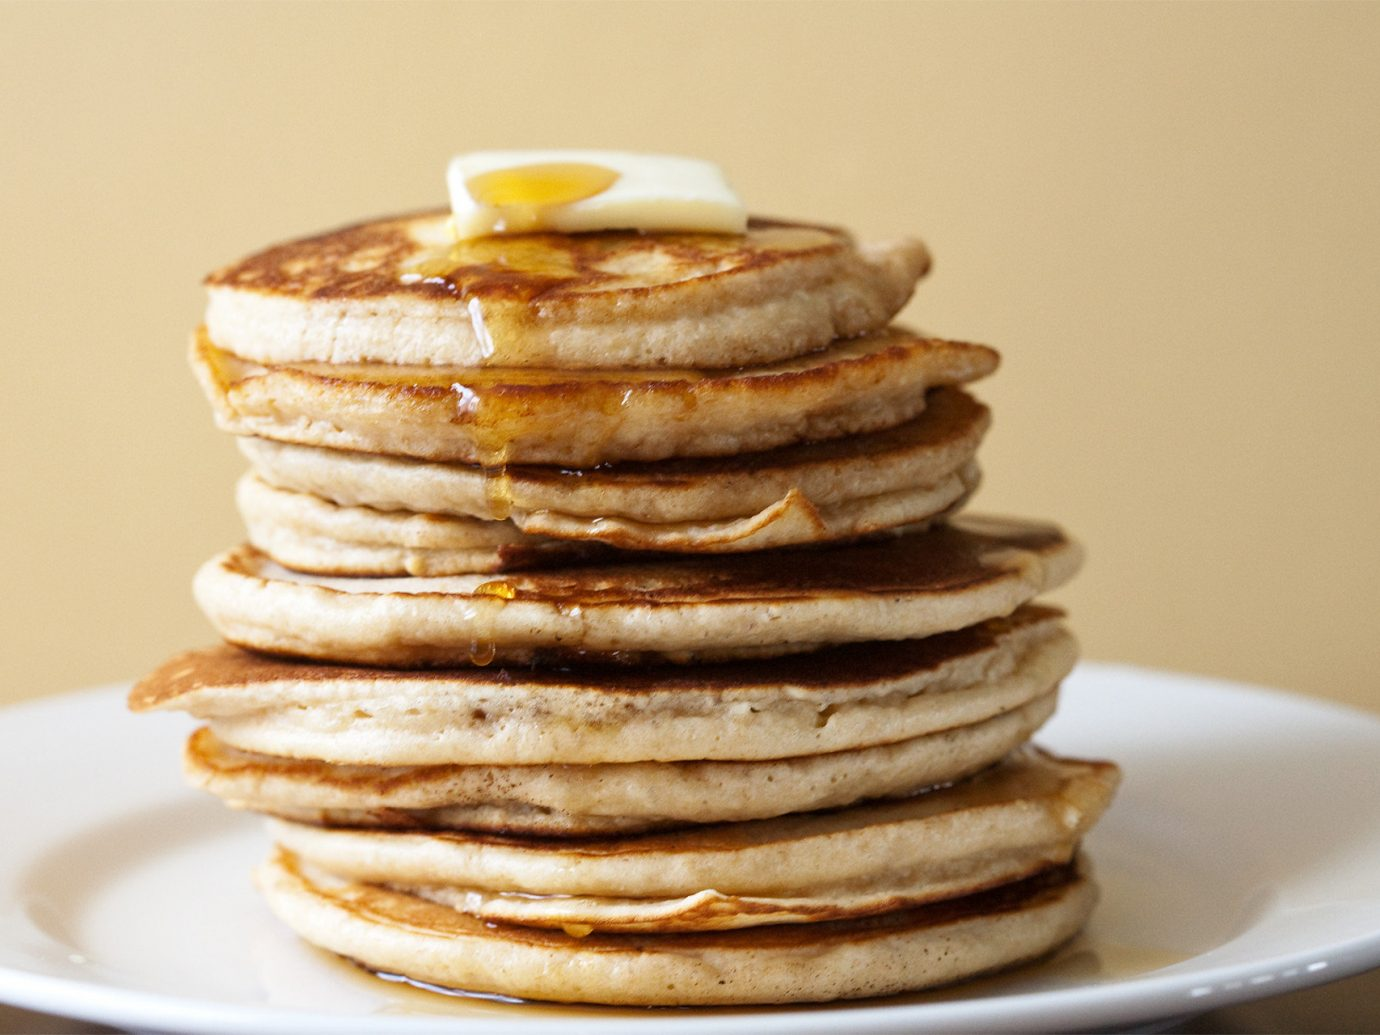 Food + Drink plate table food dish meal indoor breakfast pancake white dessert produce flavor cuisine stack stacked sliced